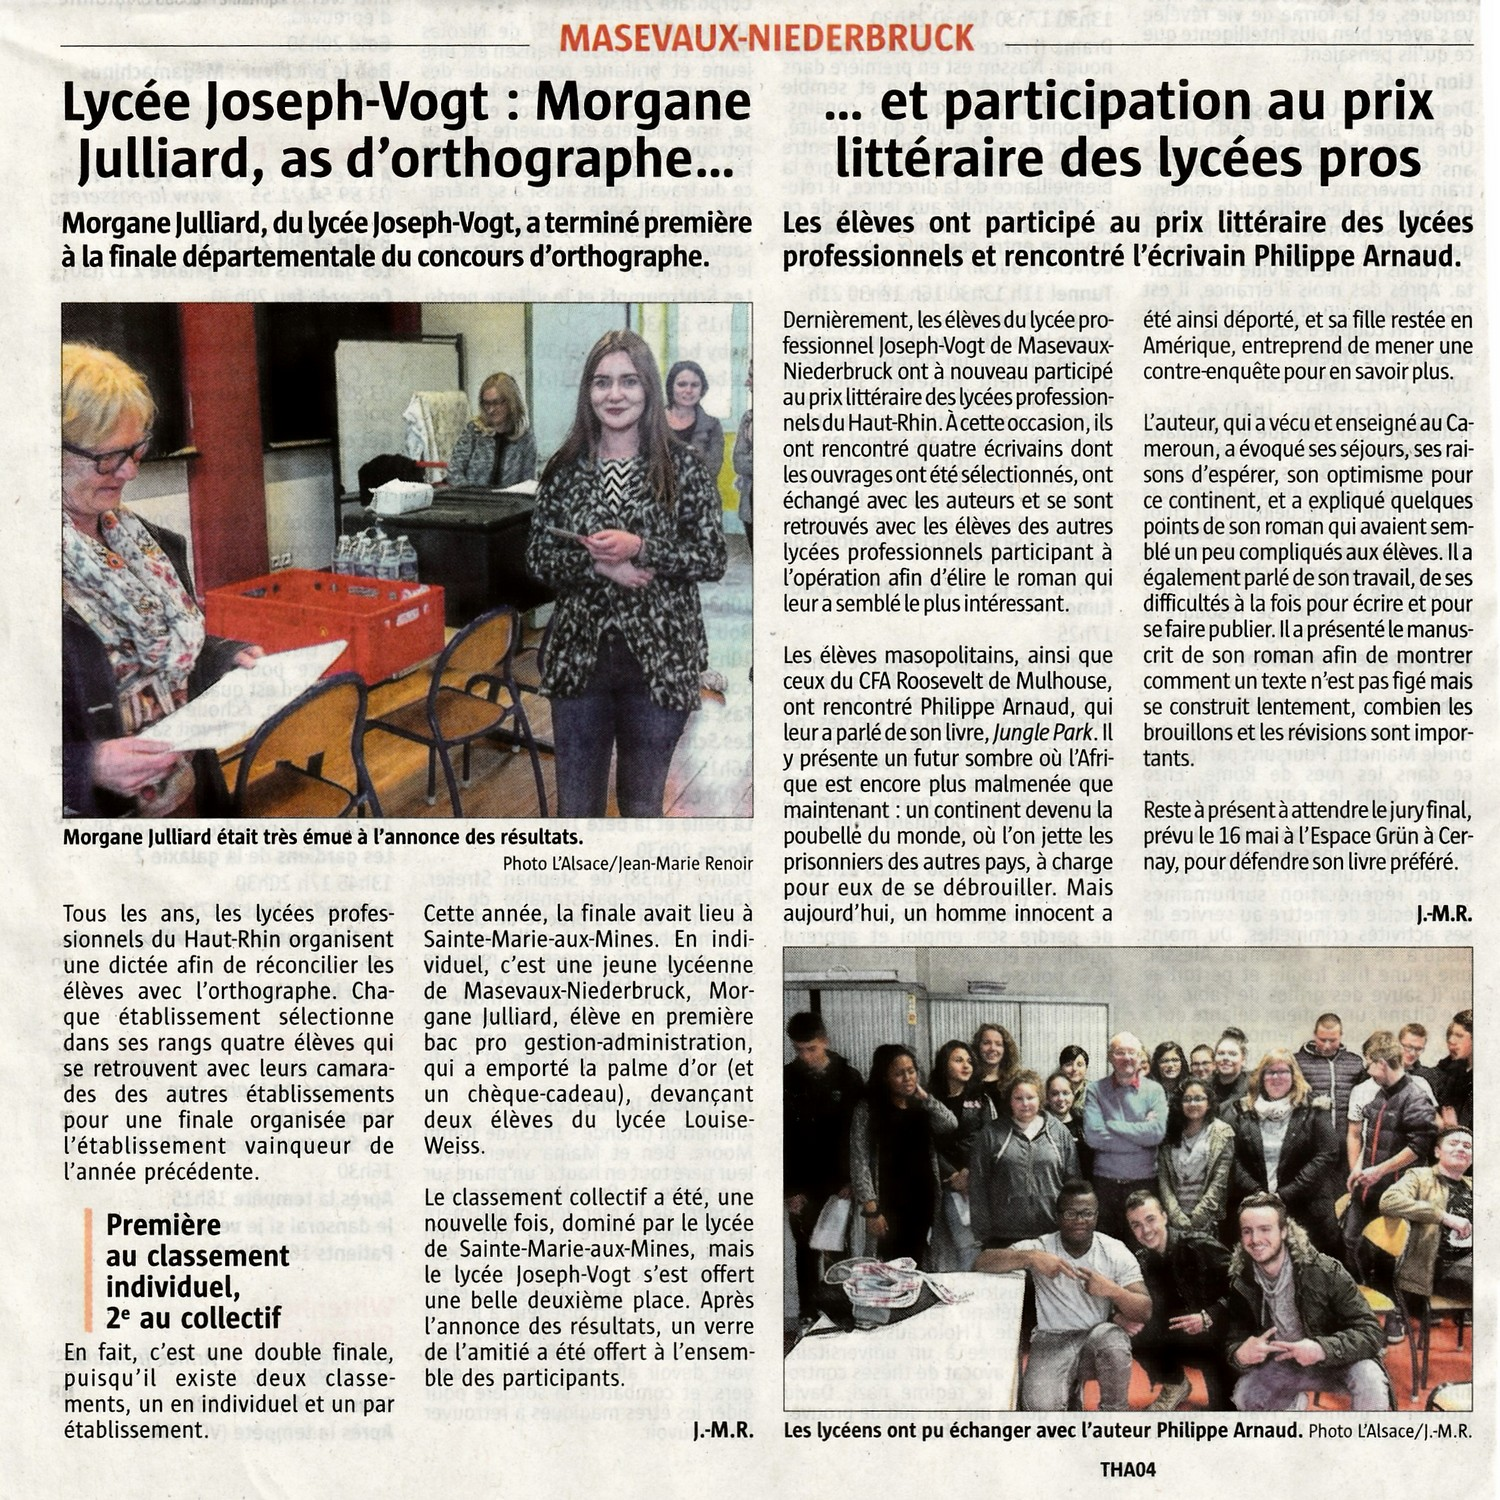 Article concours d orthogrphe